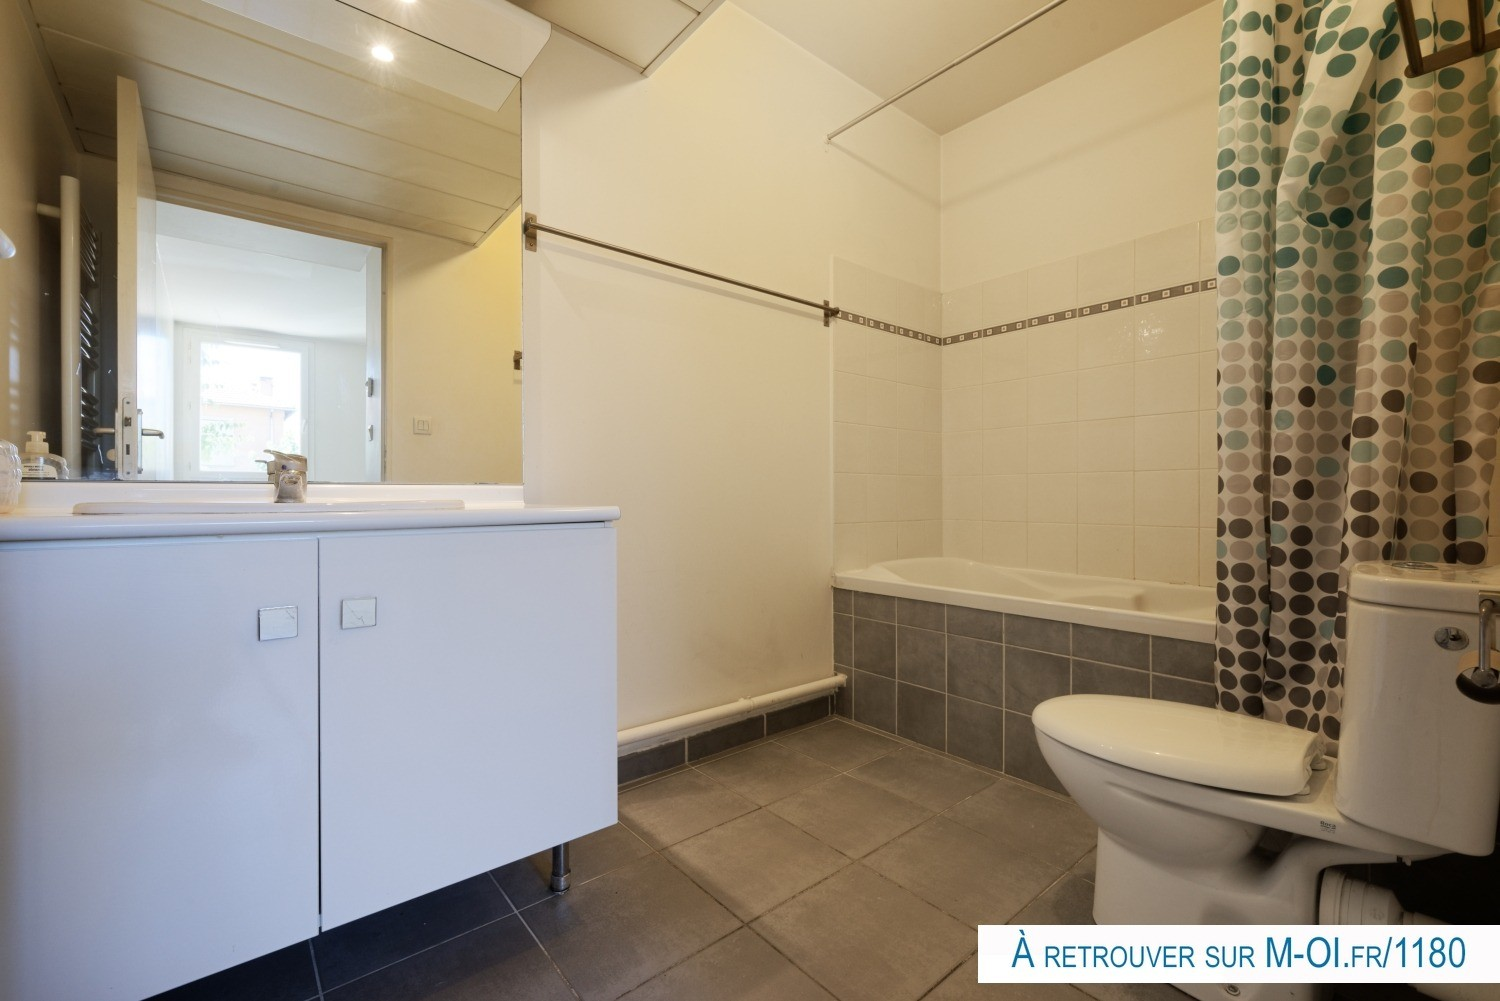 13100-aix-en-provence-vente-appartement-2-pieces_3.jpg